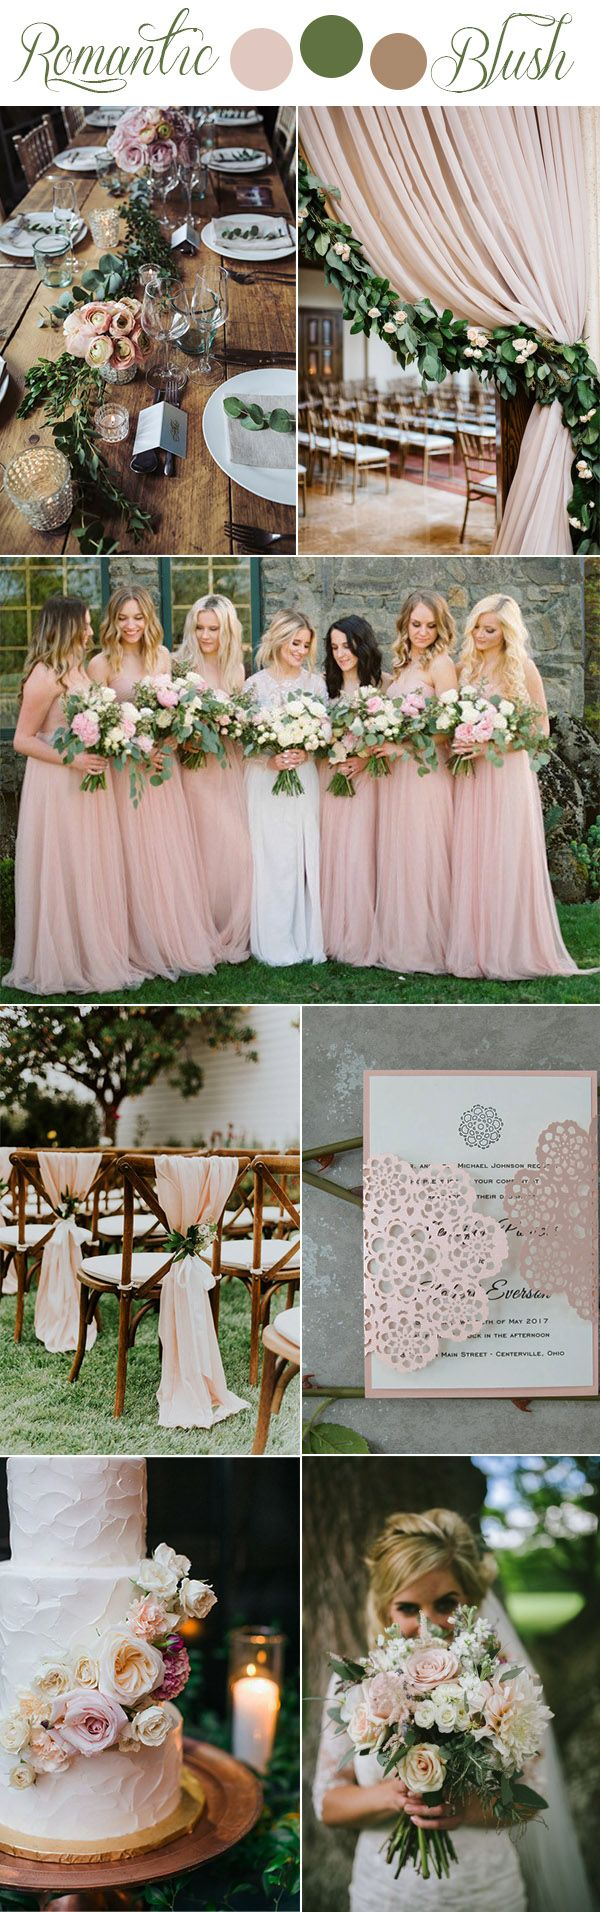 7 Gorgeous Rustic Romantic and Elegant Wedding Ideas & Color ...